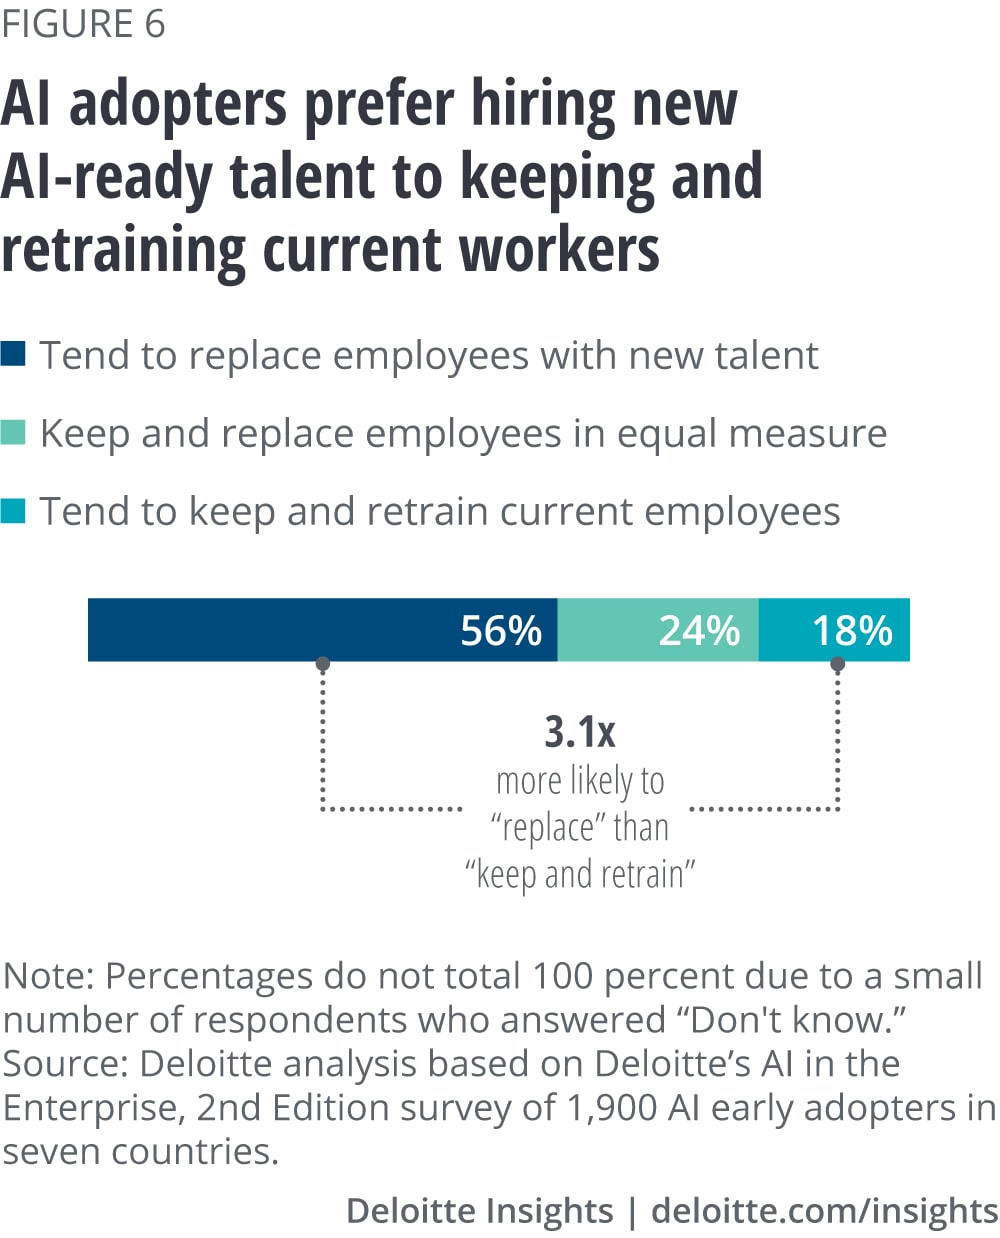 AI adopters prefer hiring new AI-ready talent to keeping and retraining current workers